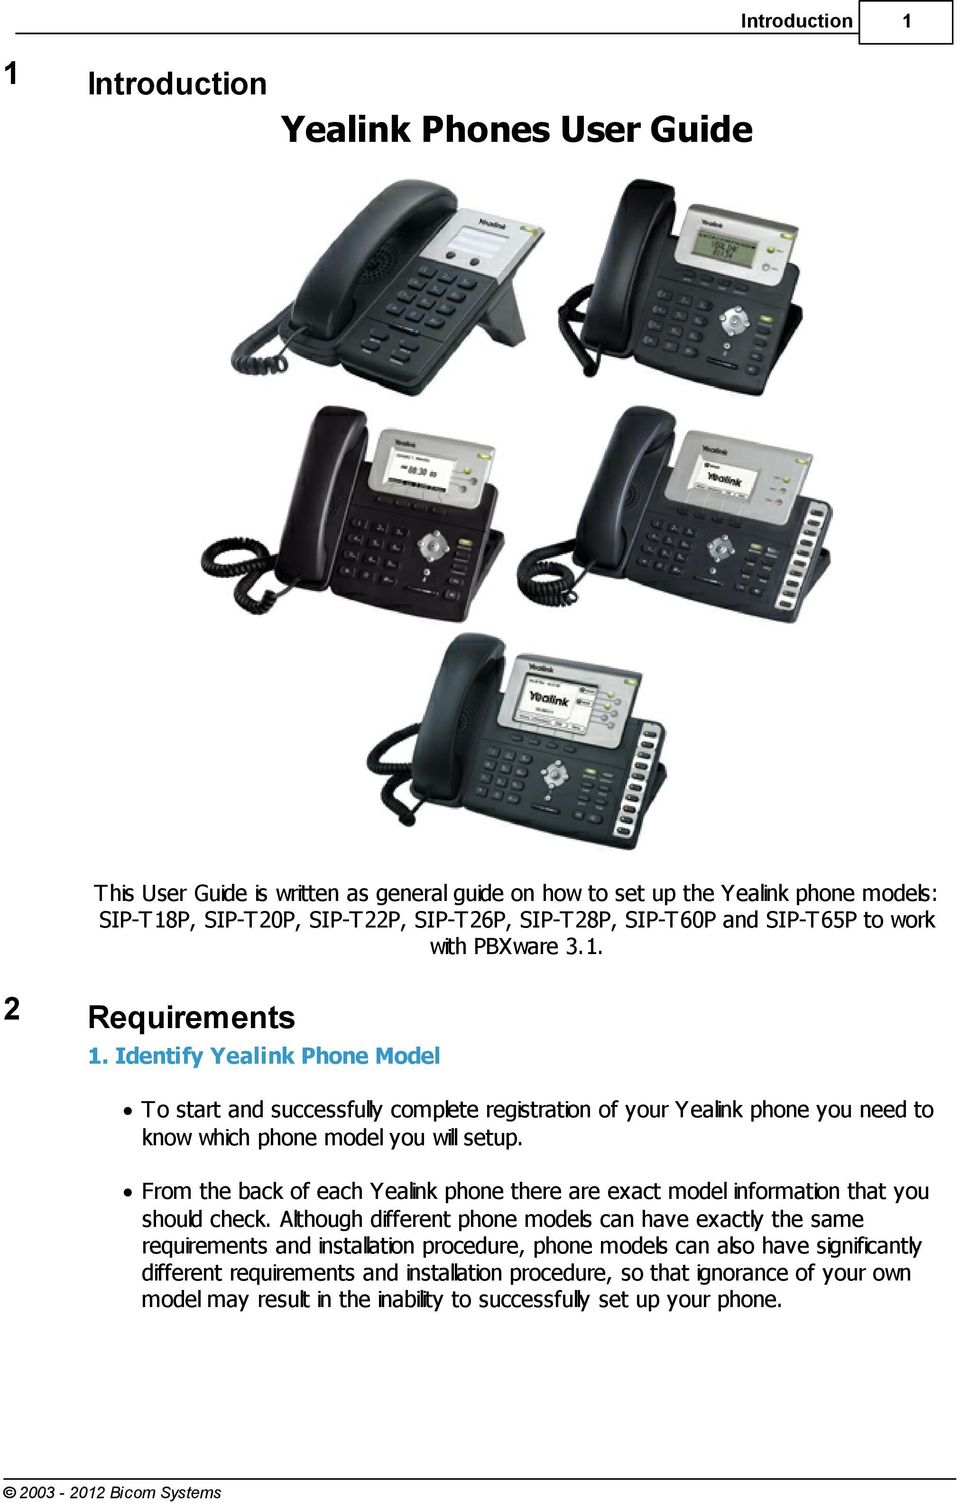 Yealink Phones User Guide Bicom Systems - PDF